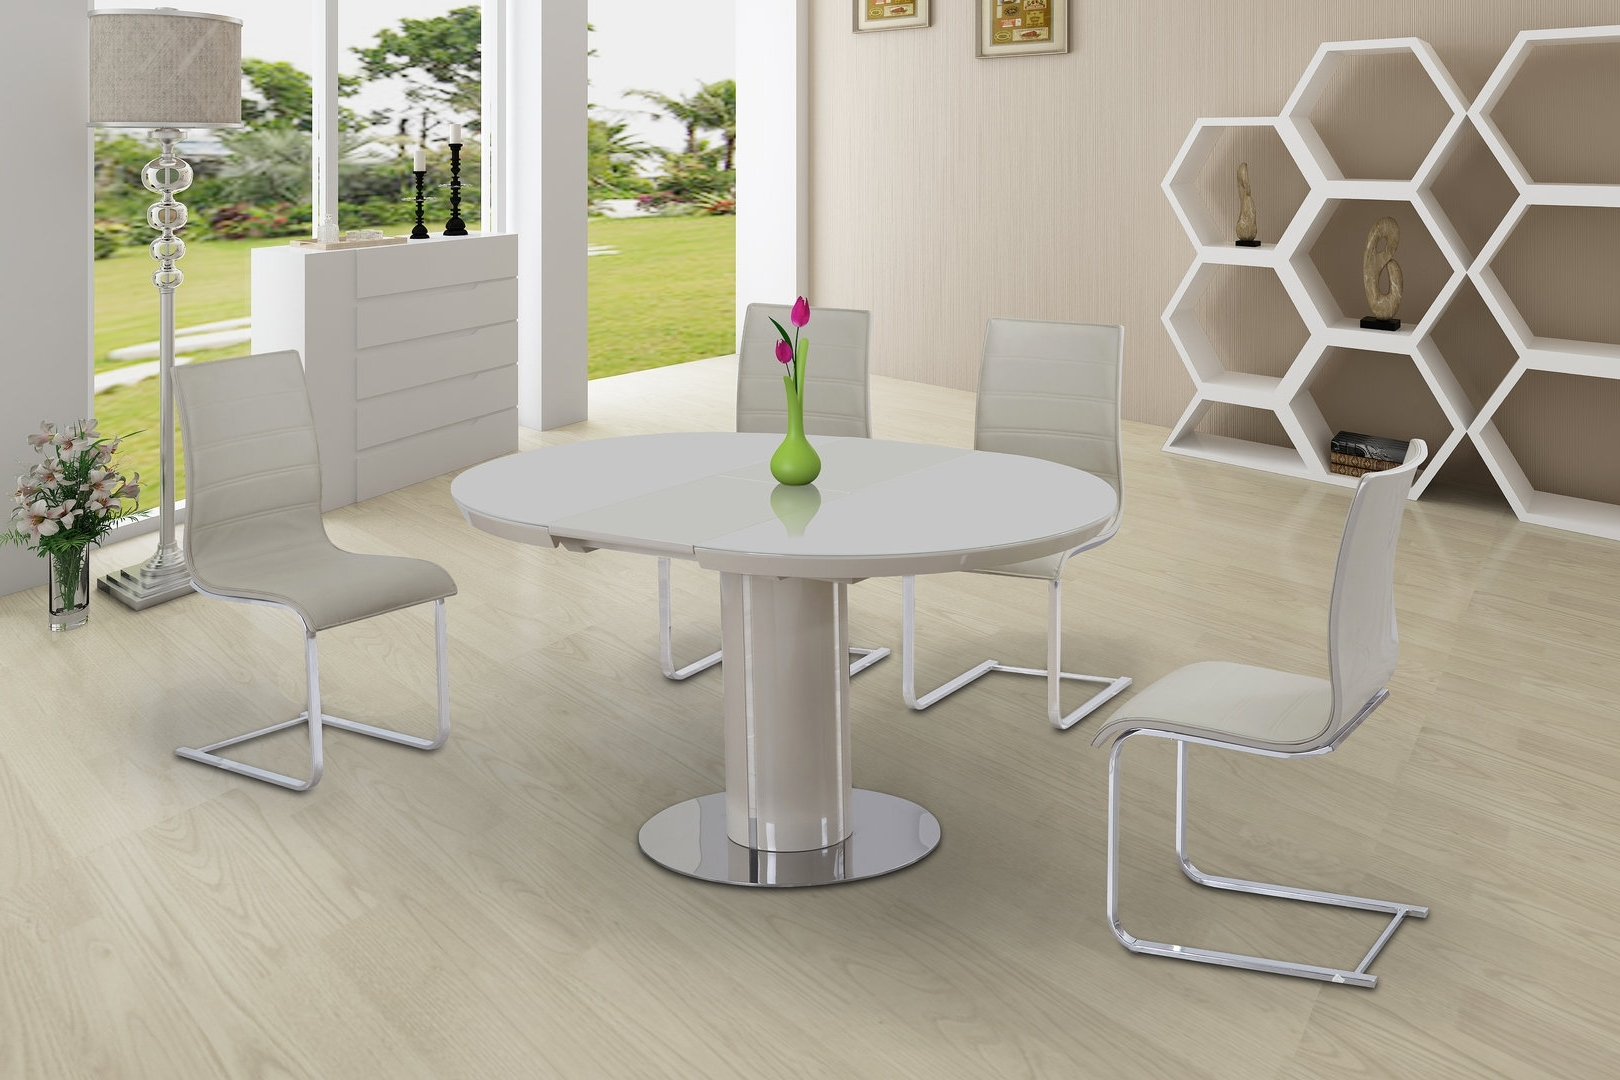 Gloss Dining Tables Throughout Most Recently Released Round Cream Glass High Gloss Dining Table & 6 Chairs – Homegenies (Gallery 7 of 25)